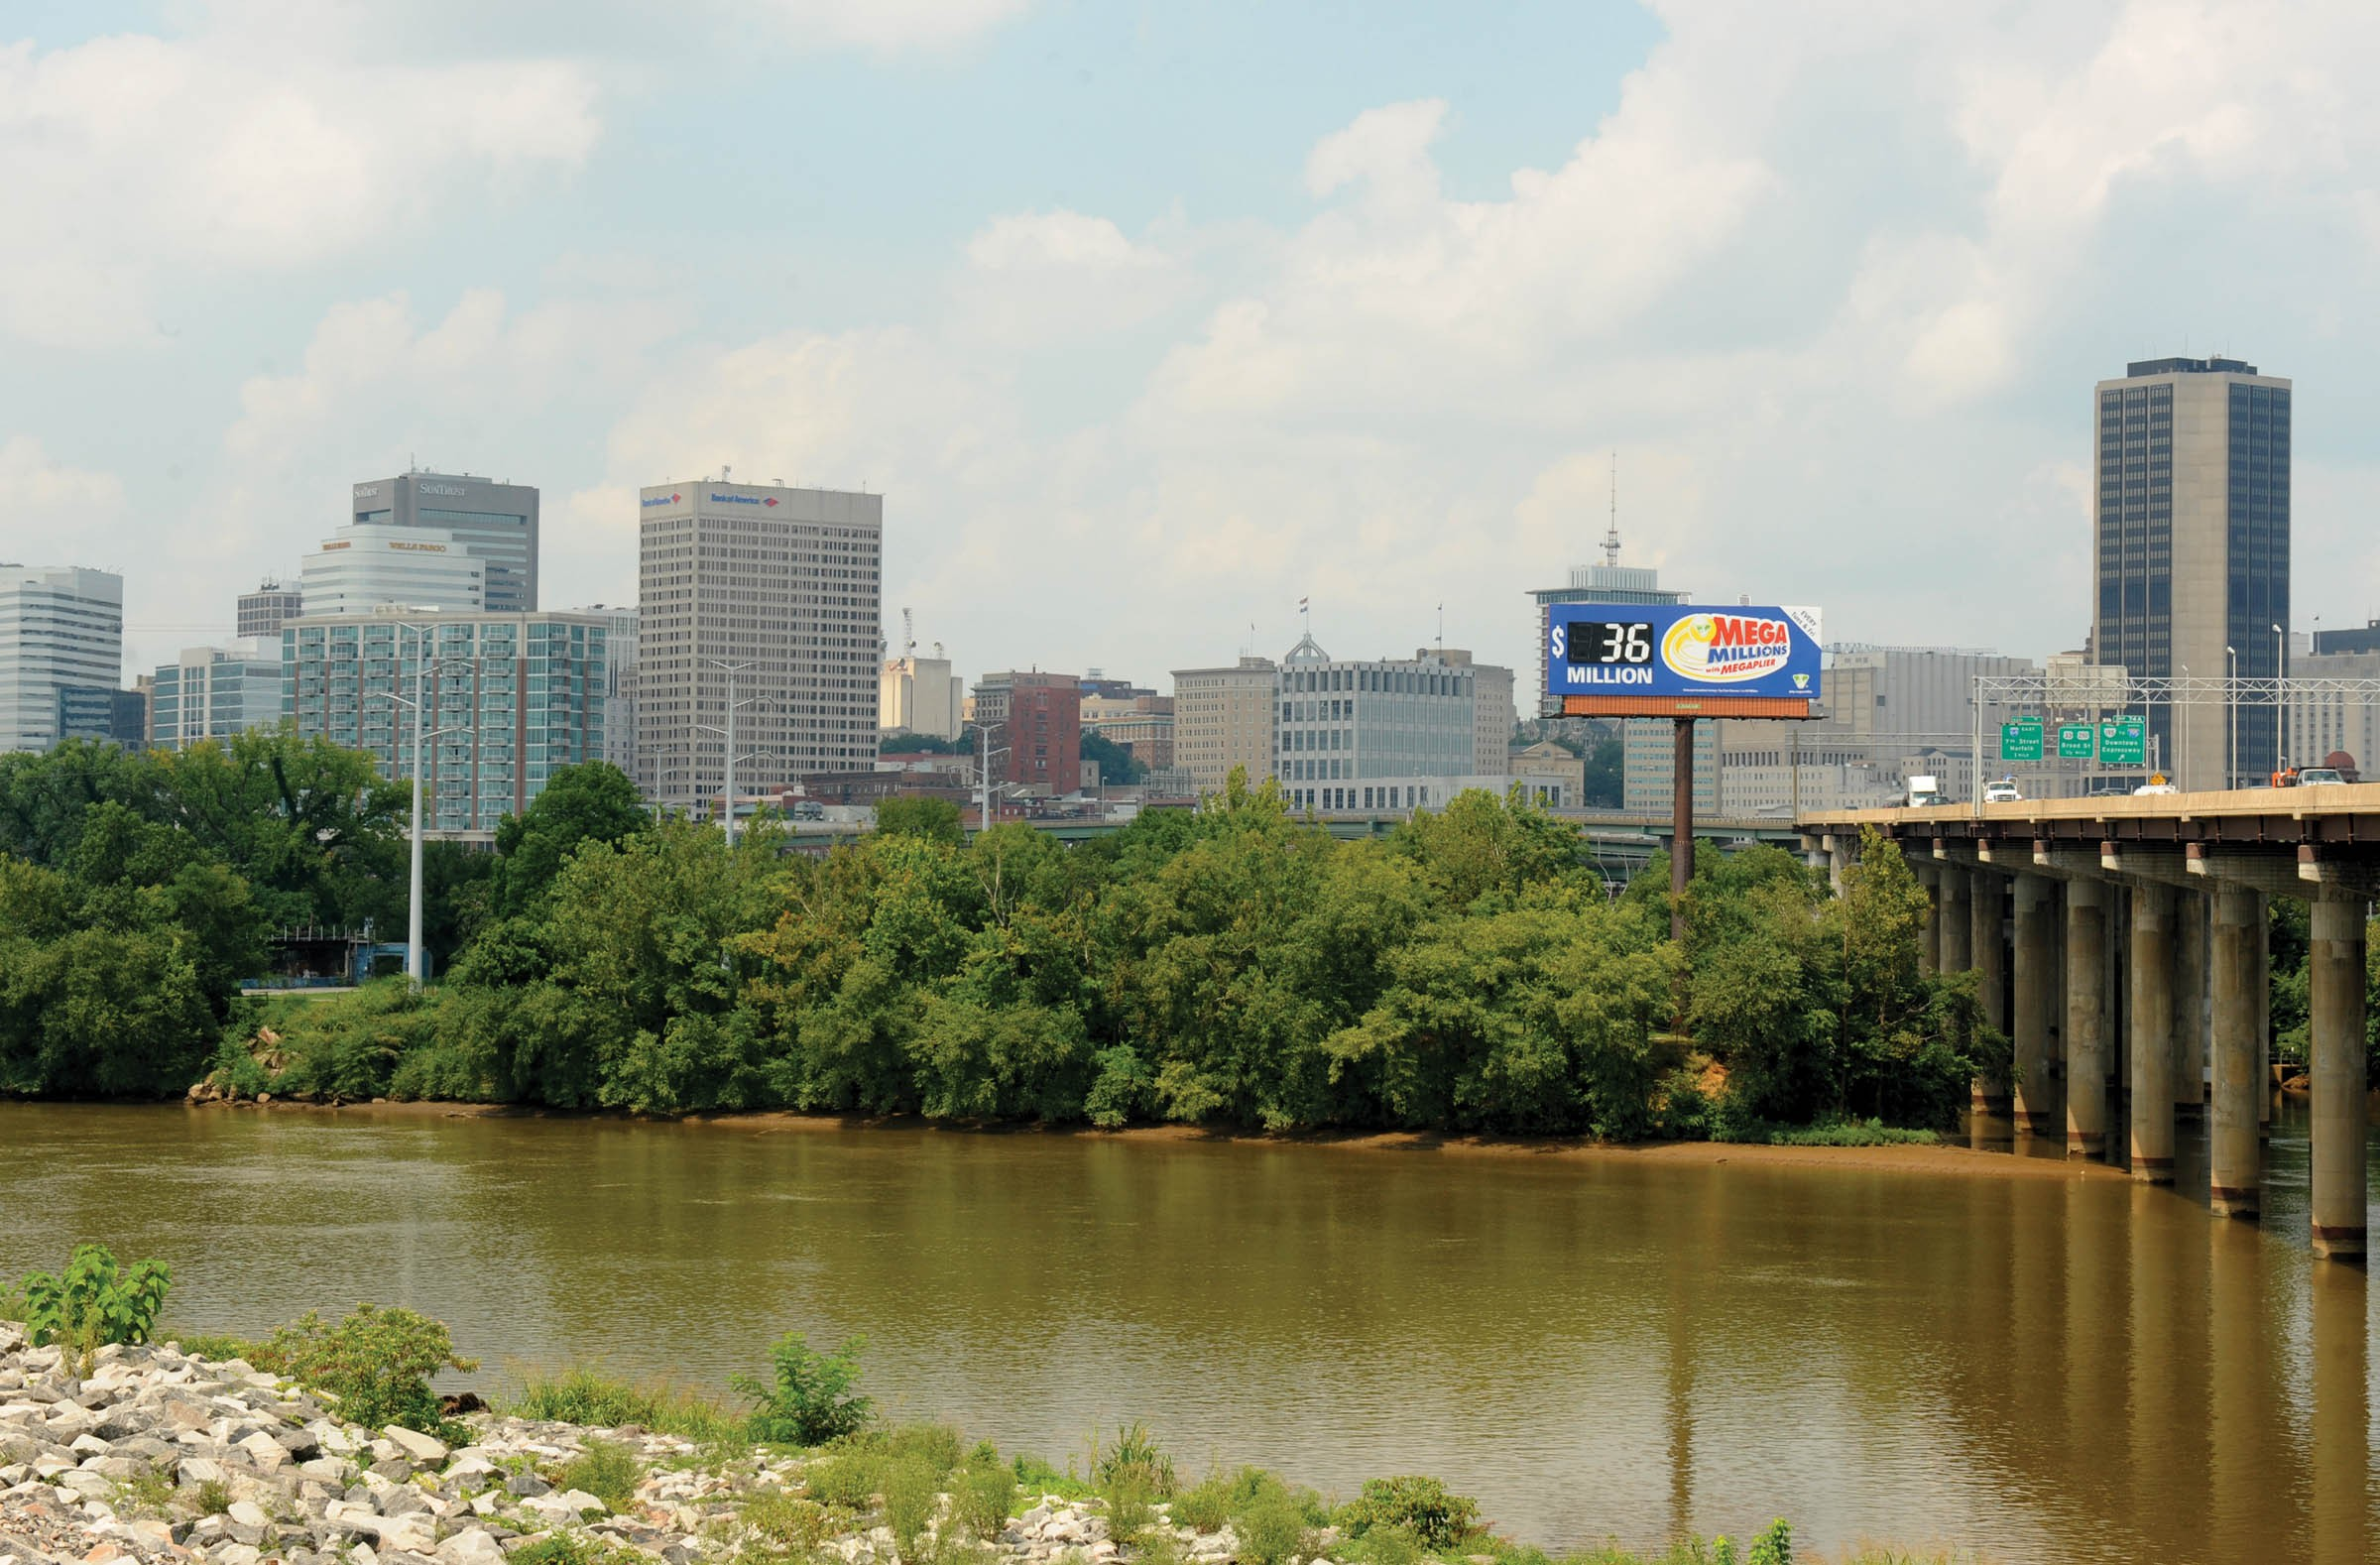 The organizers of an upcoming country music festival on Mayo Island were drawn to its views of downtown Richmond. - SCOTT ELMQUIST